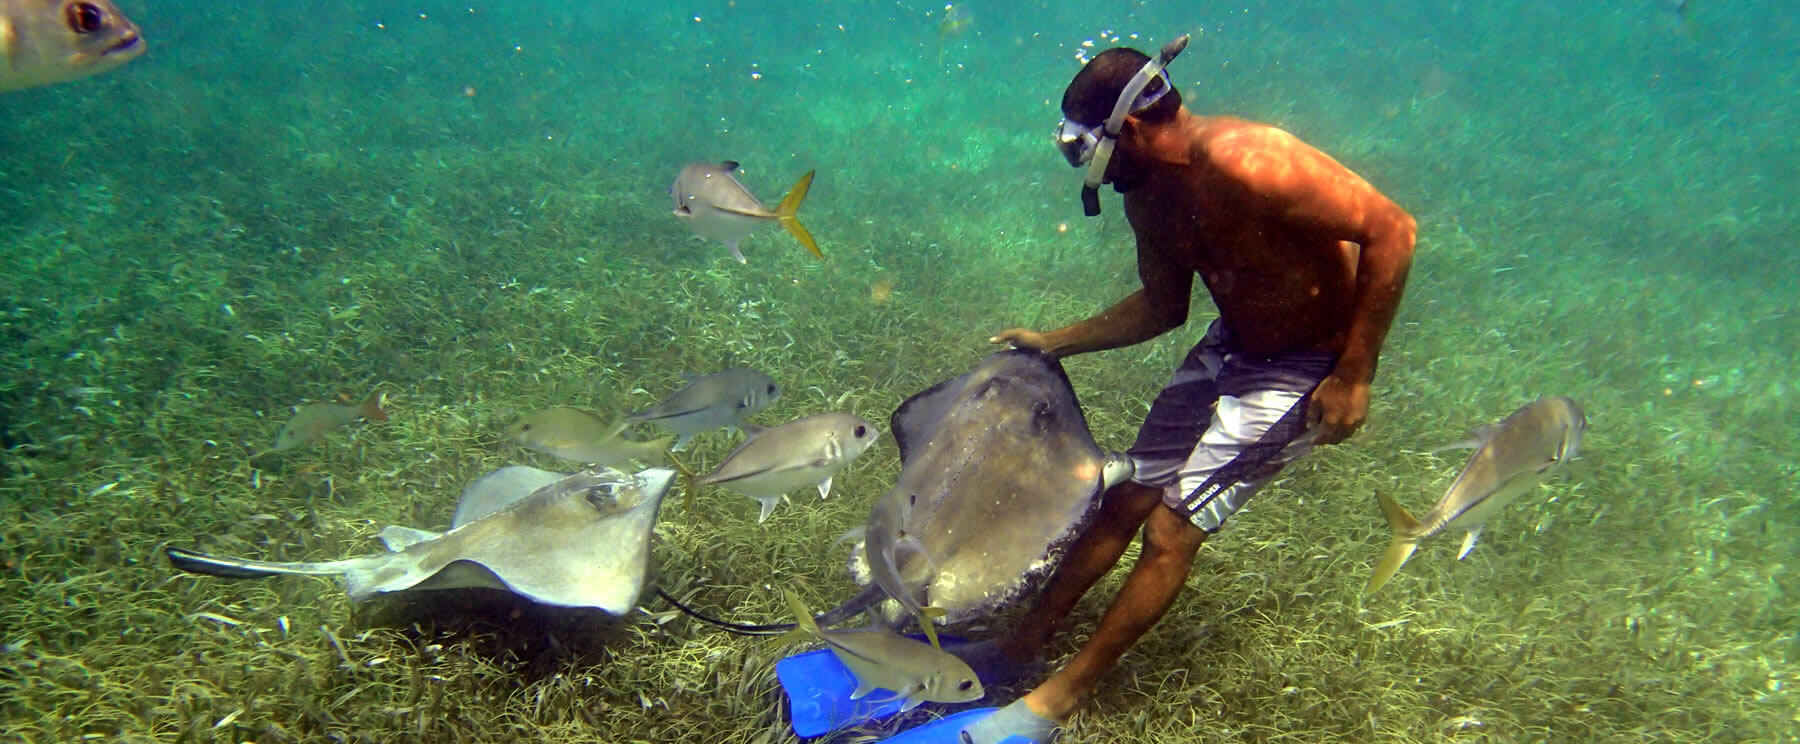 snorkeling-diving-swimming-belize